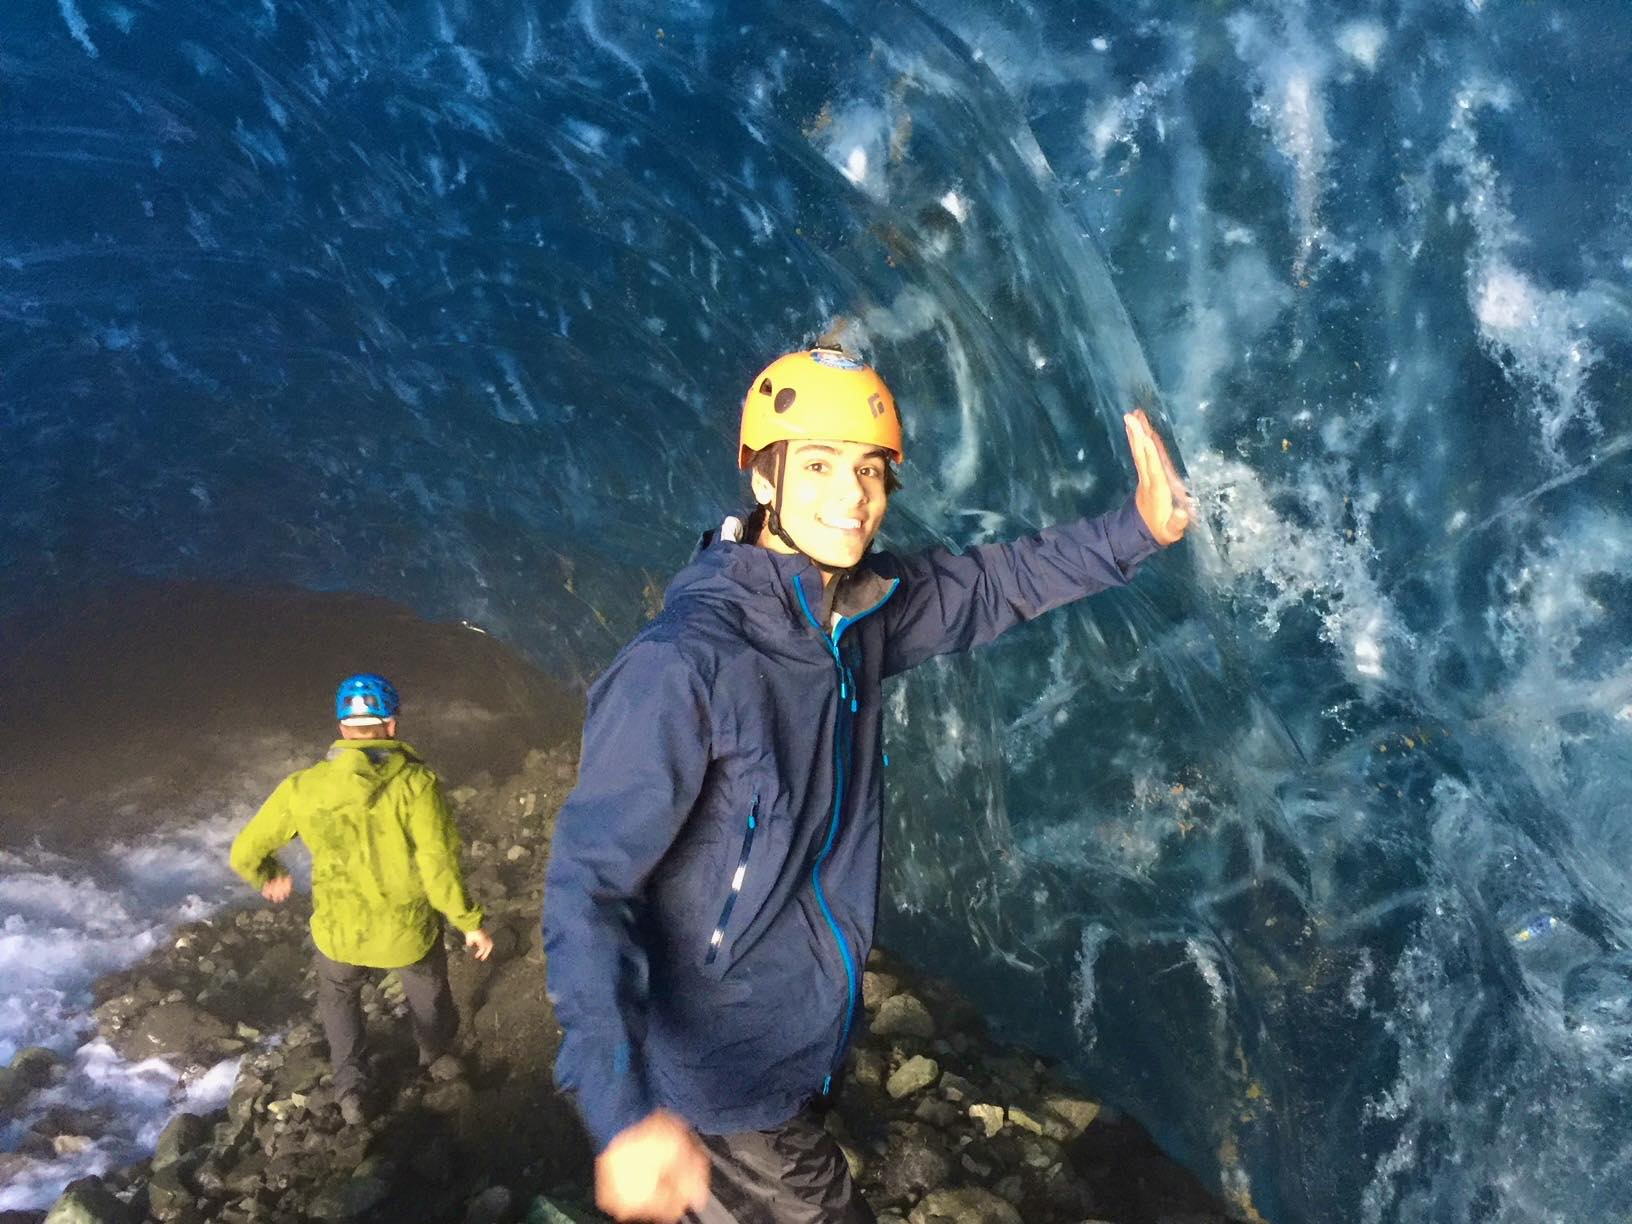 4/Explore an ice cave